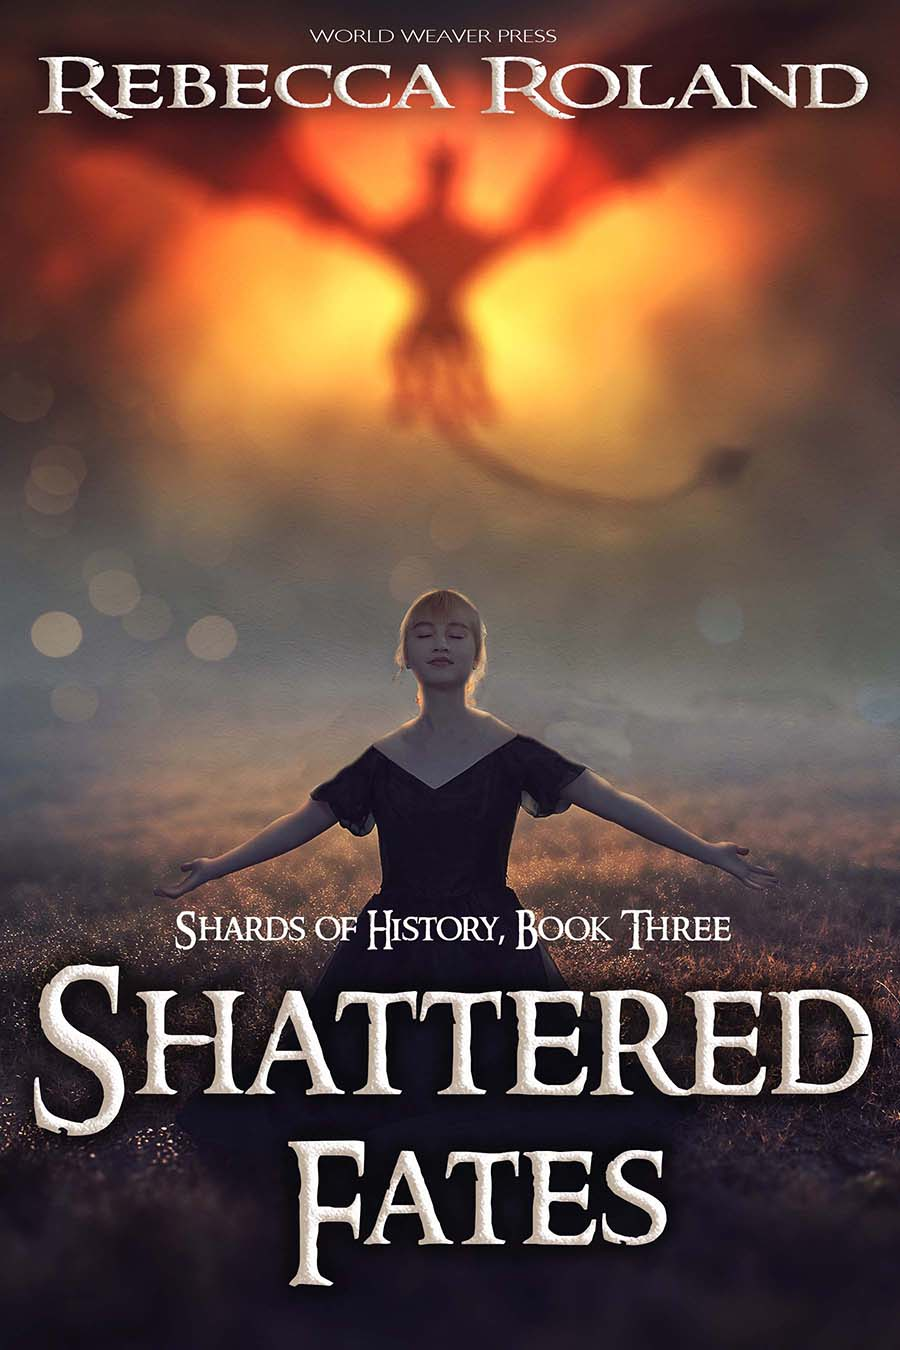 Shattered Fates cover image